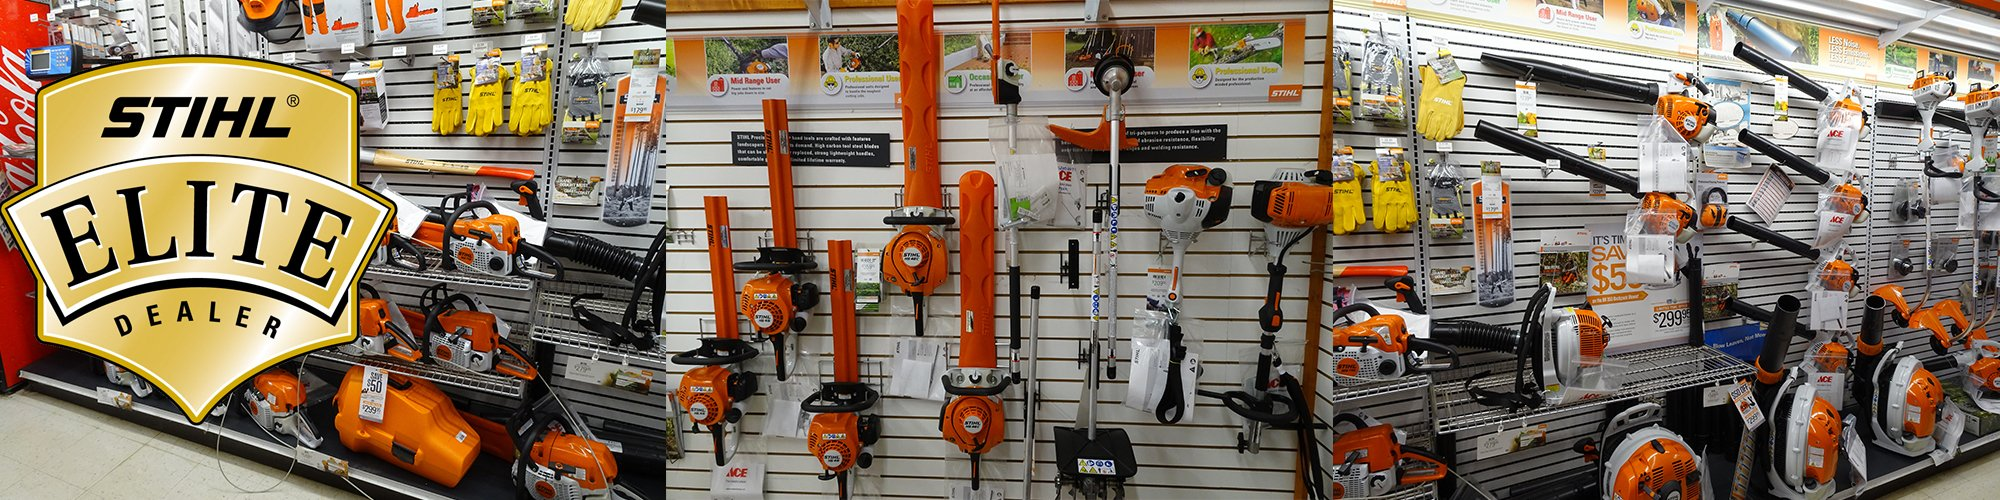 Steelmans ace hardware hardware store in advance nc publicscrutiny Images